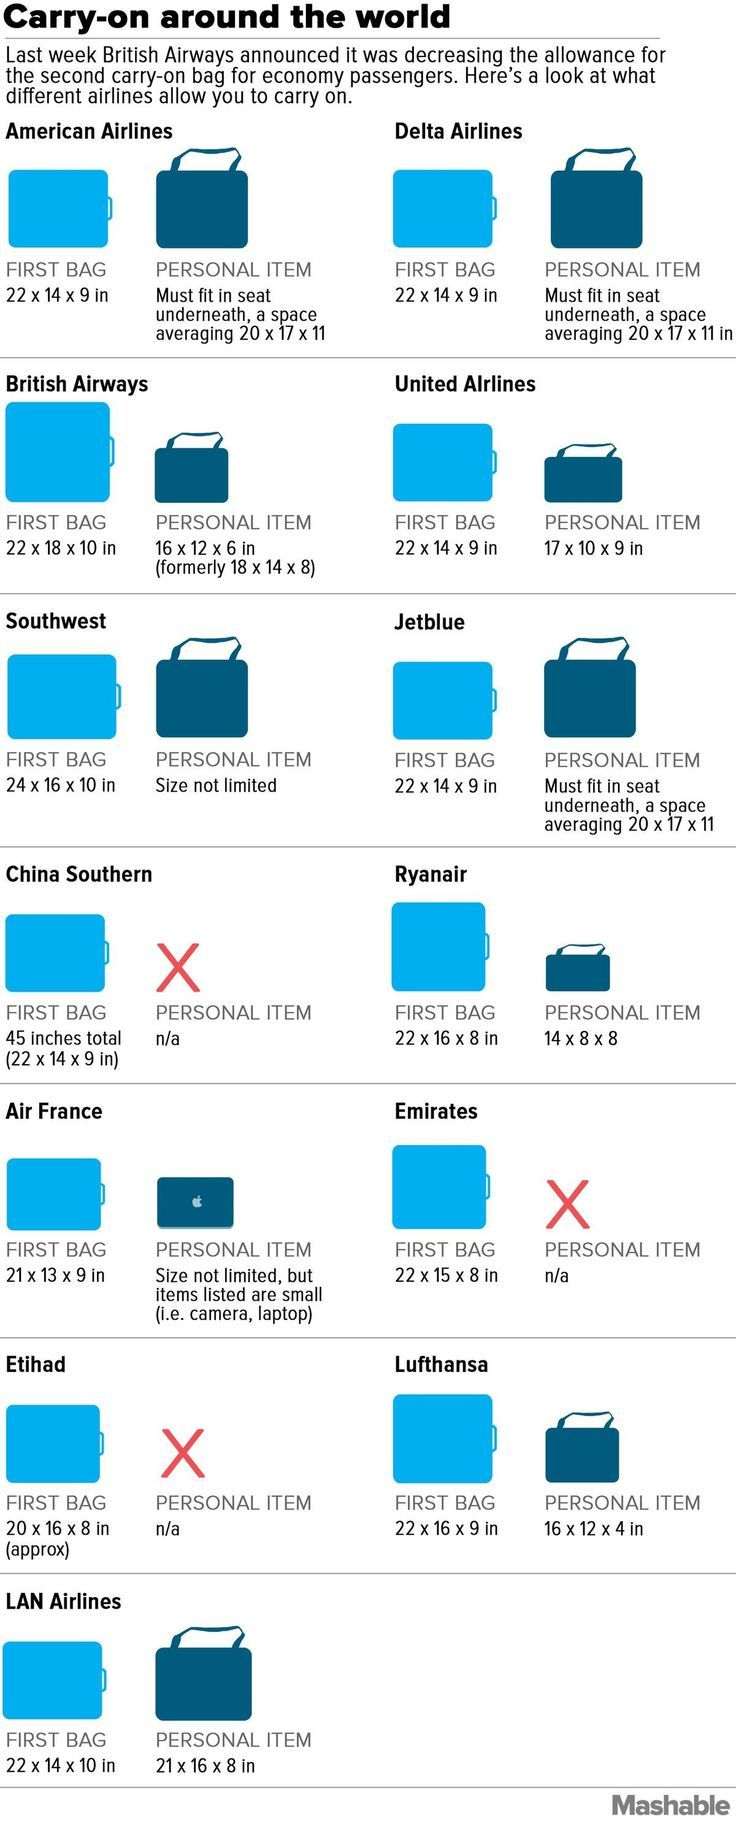 British Airways is changing baggage allowances, so here's